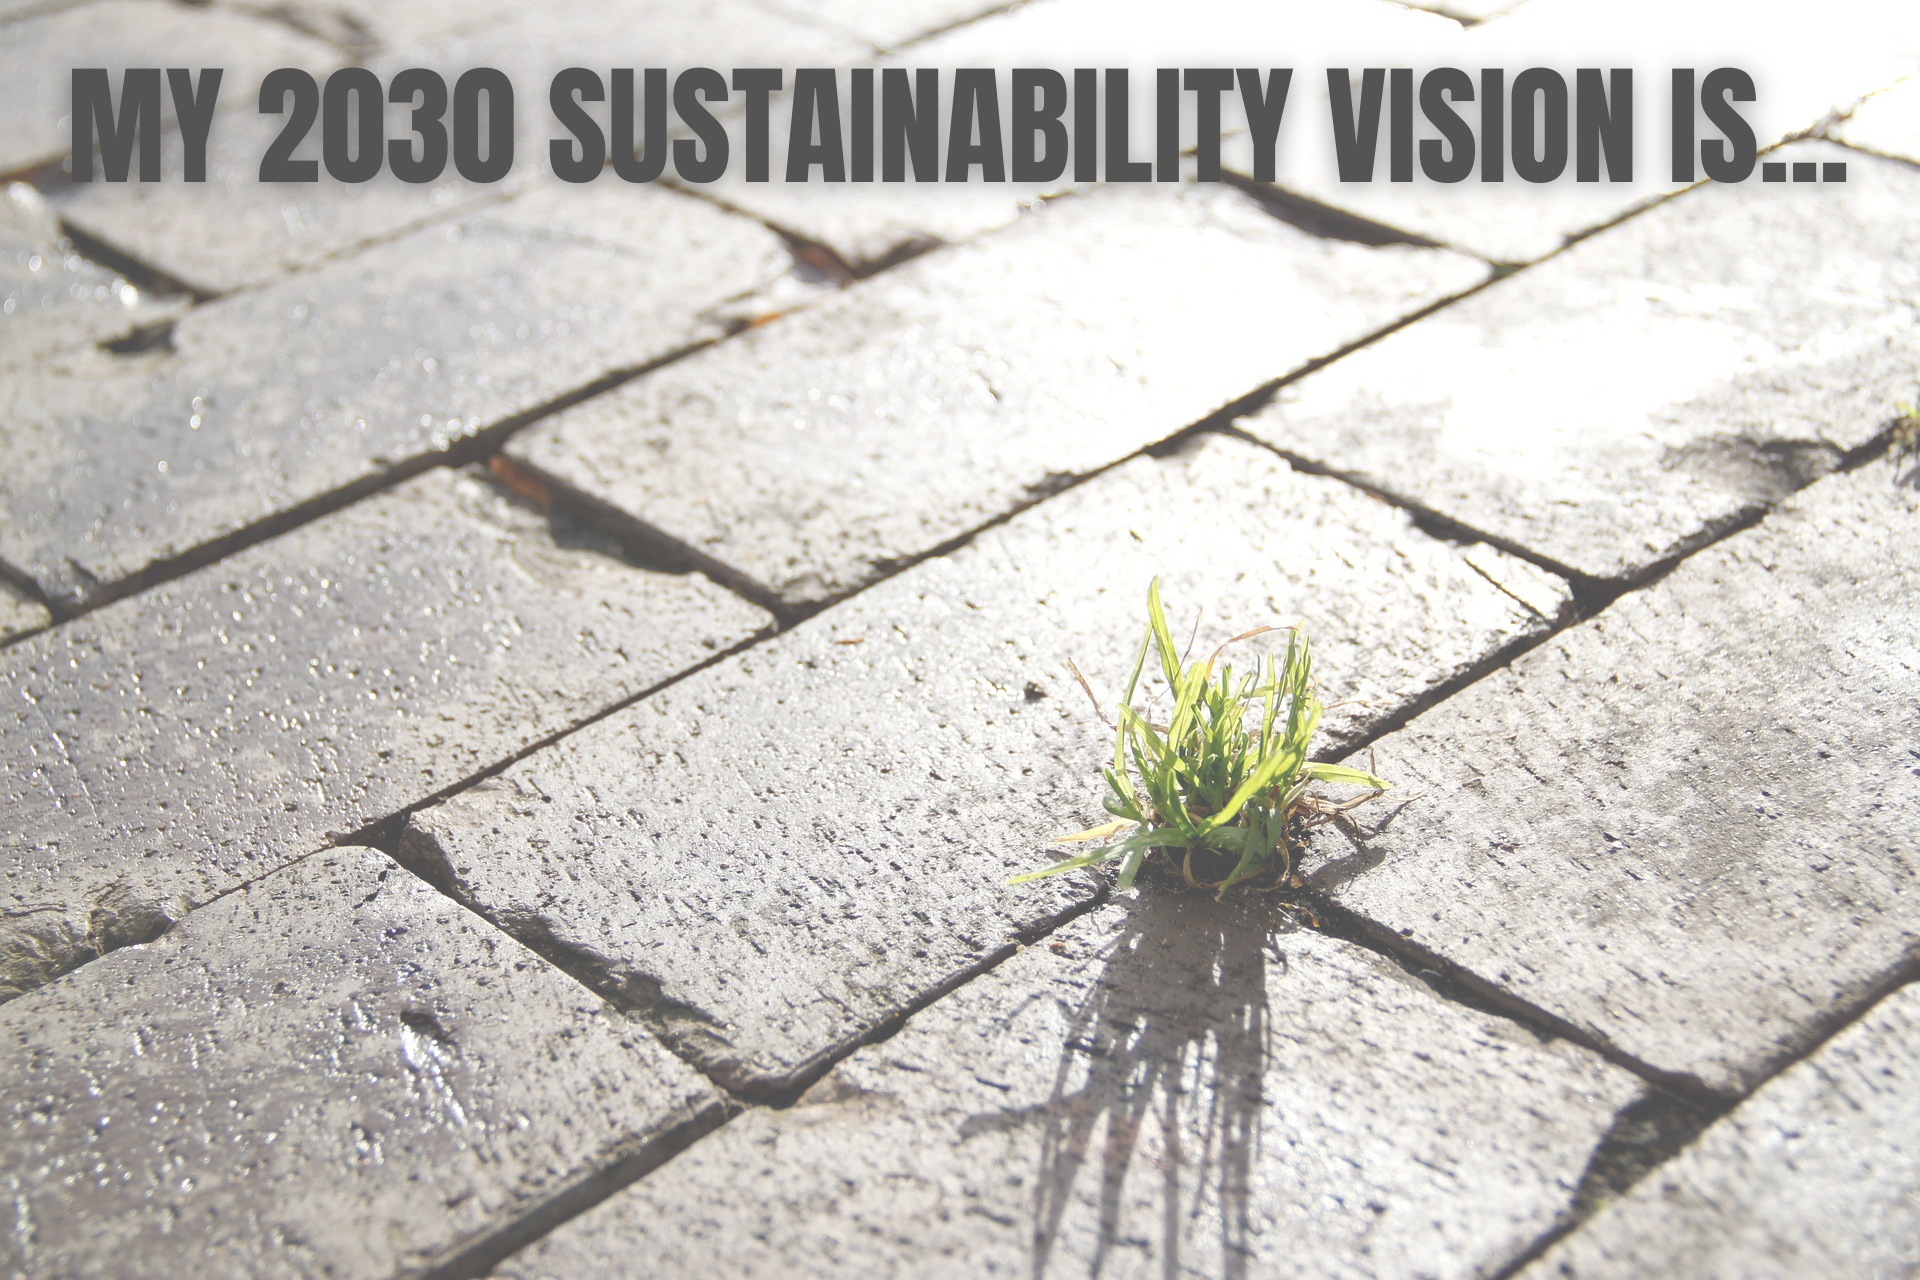 What is your Sustainable Vision for 2030?